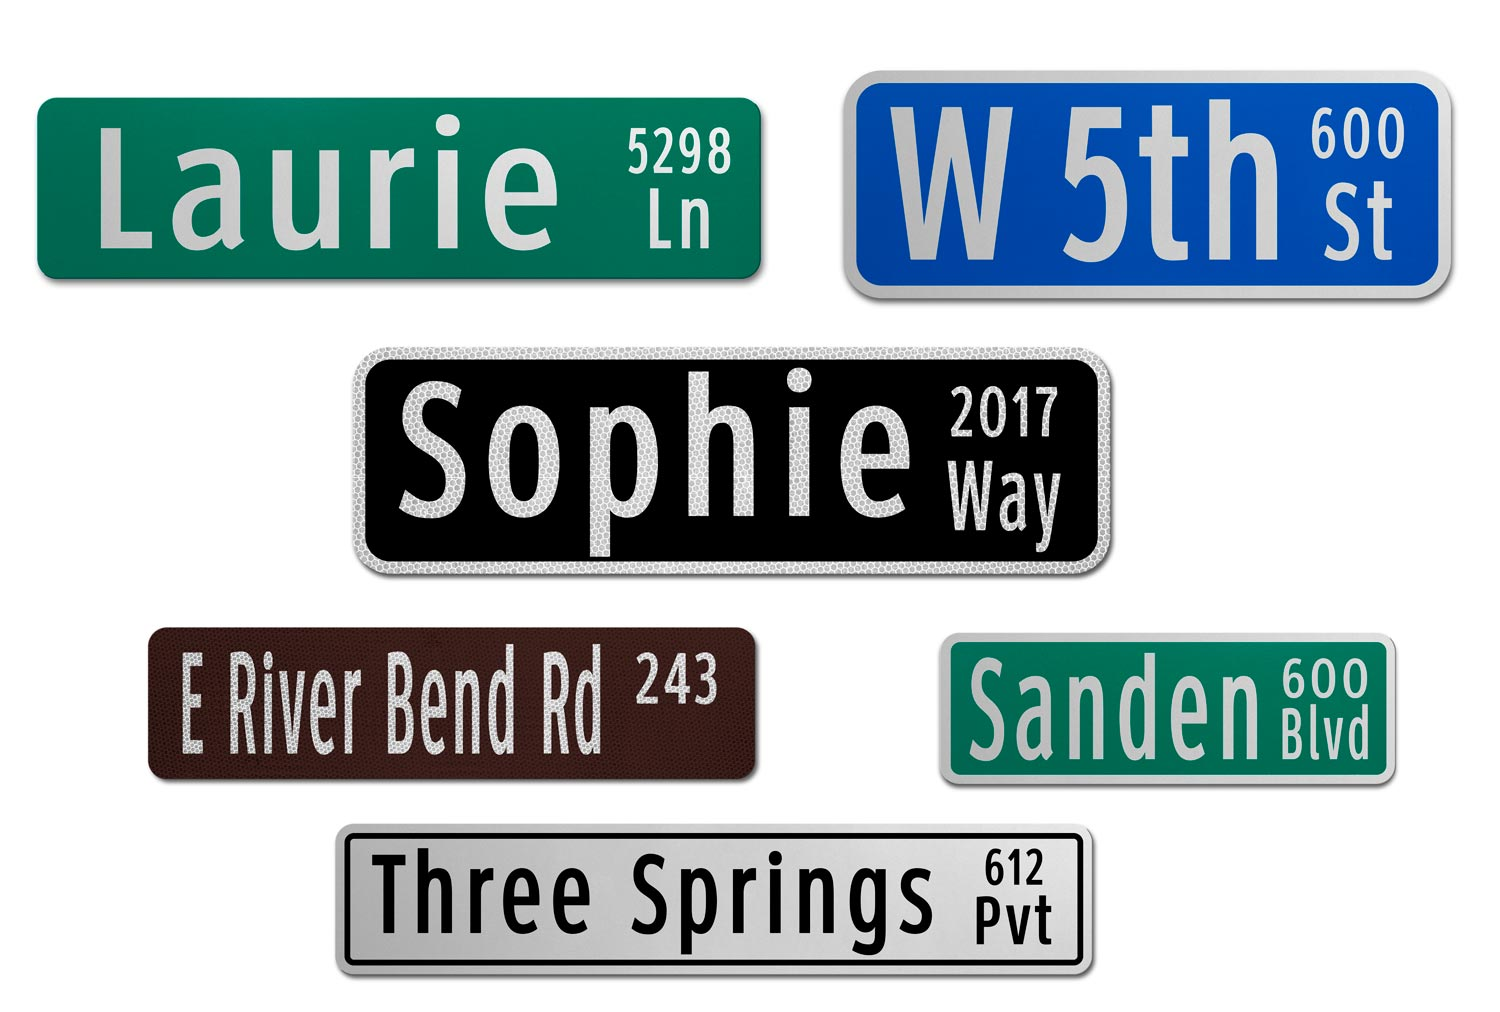 Samples of Printed Flat Blade Signs with Street Numbers